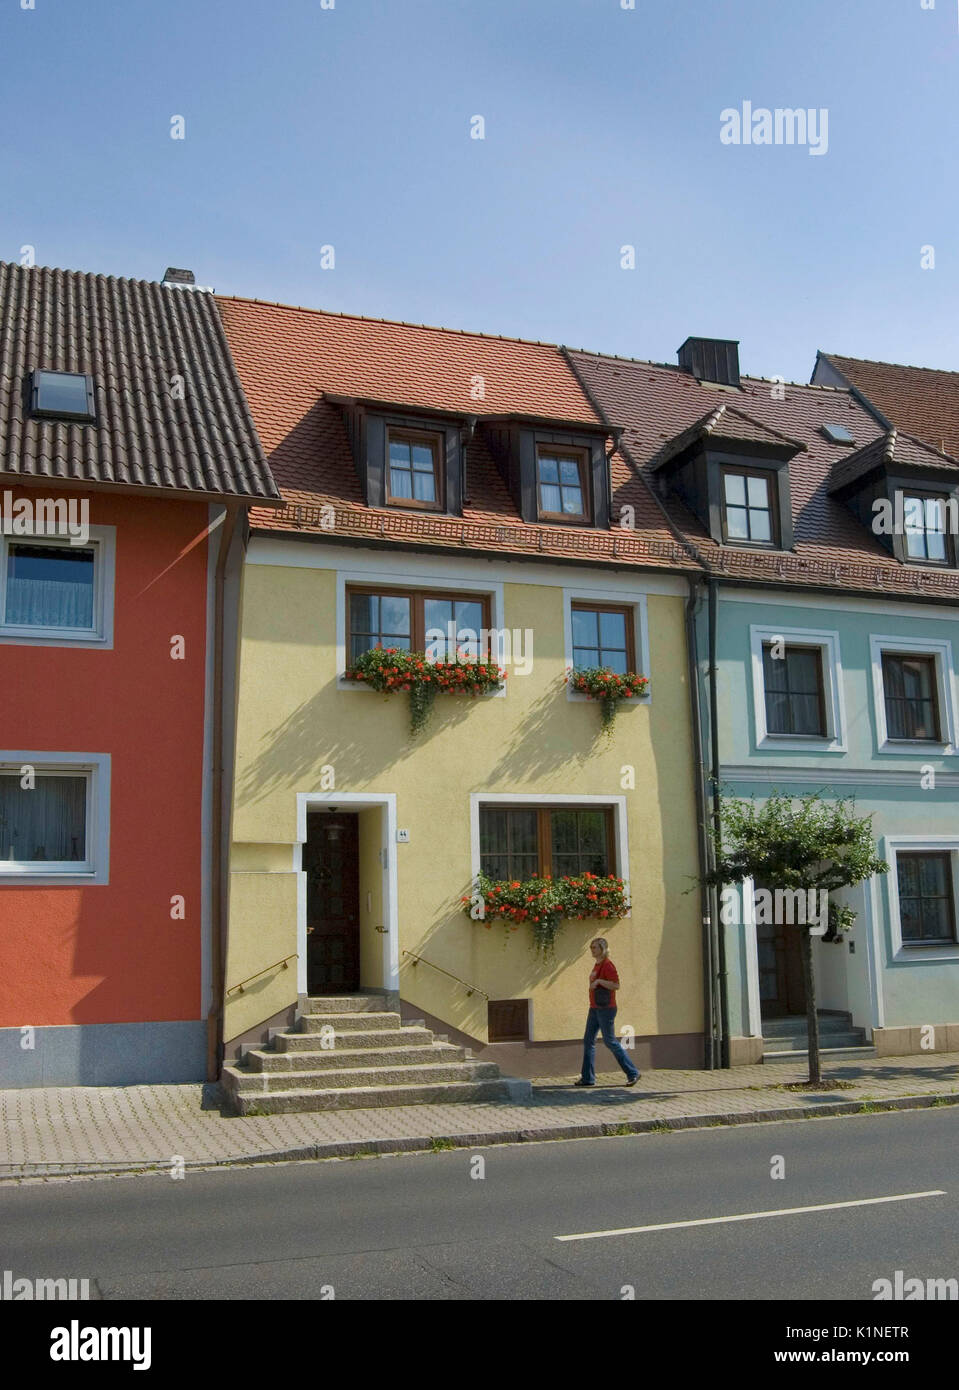 Bavaria, Germany - July 3, 2009: A woman walks past brightly painted houses with window boxes containing colorful flowers. - Stock Image